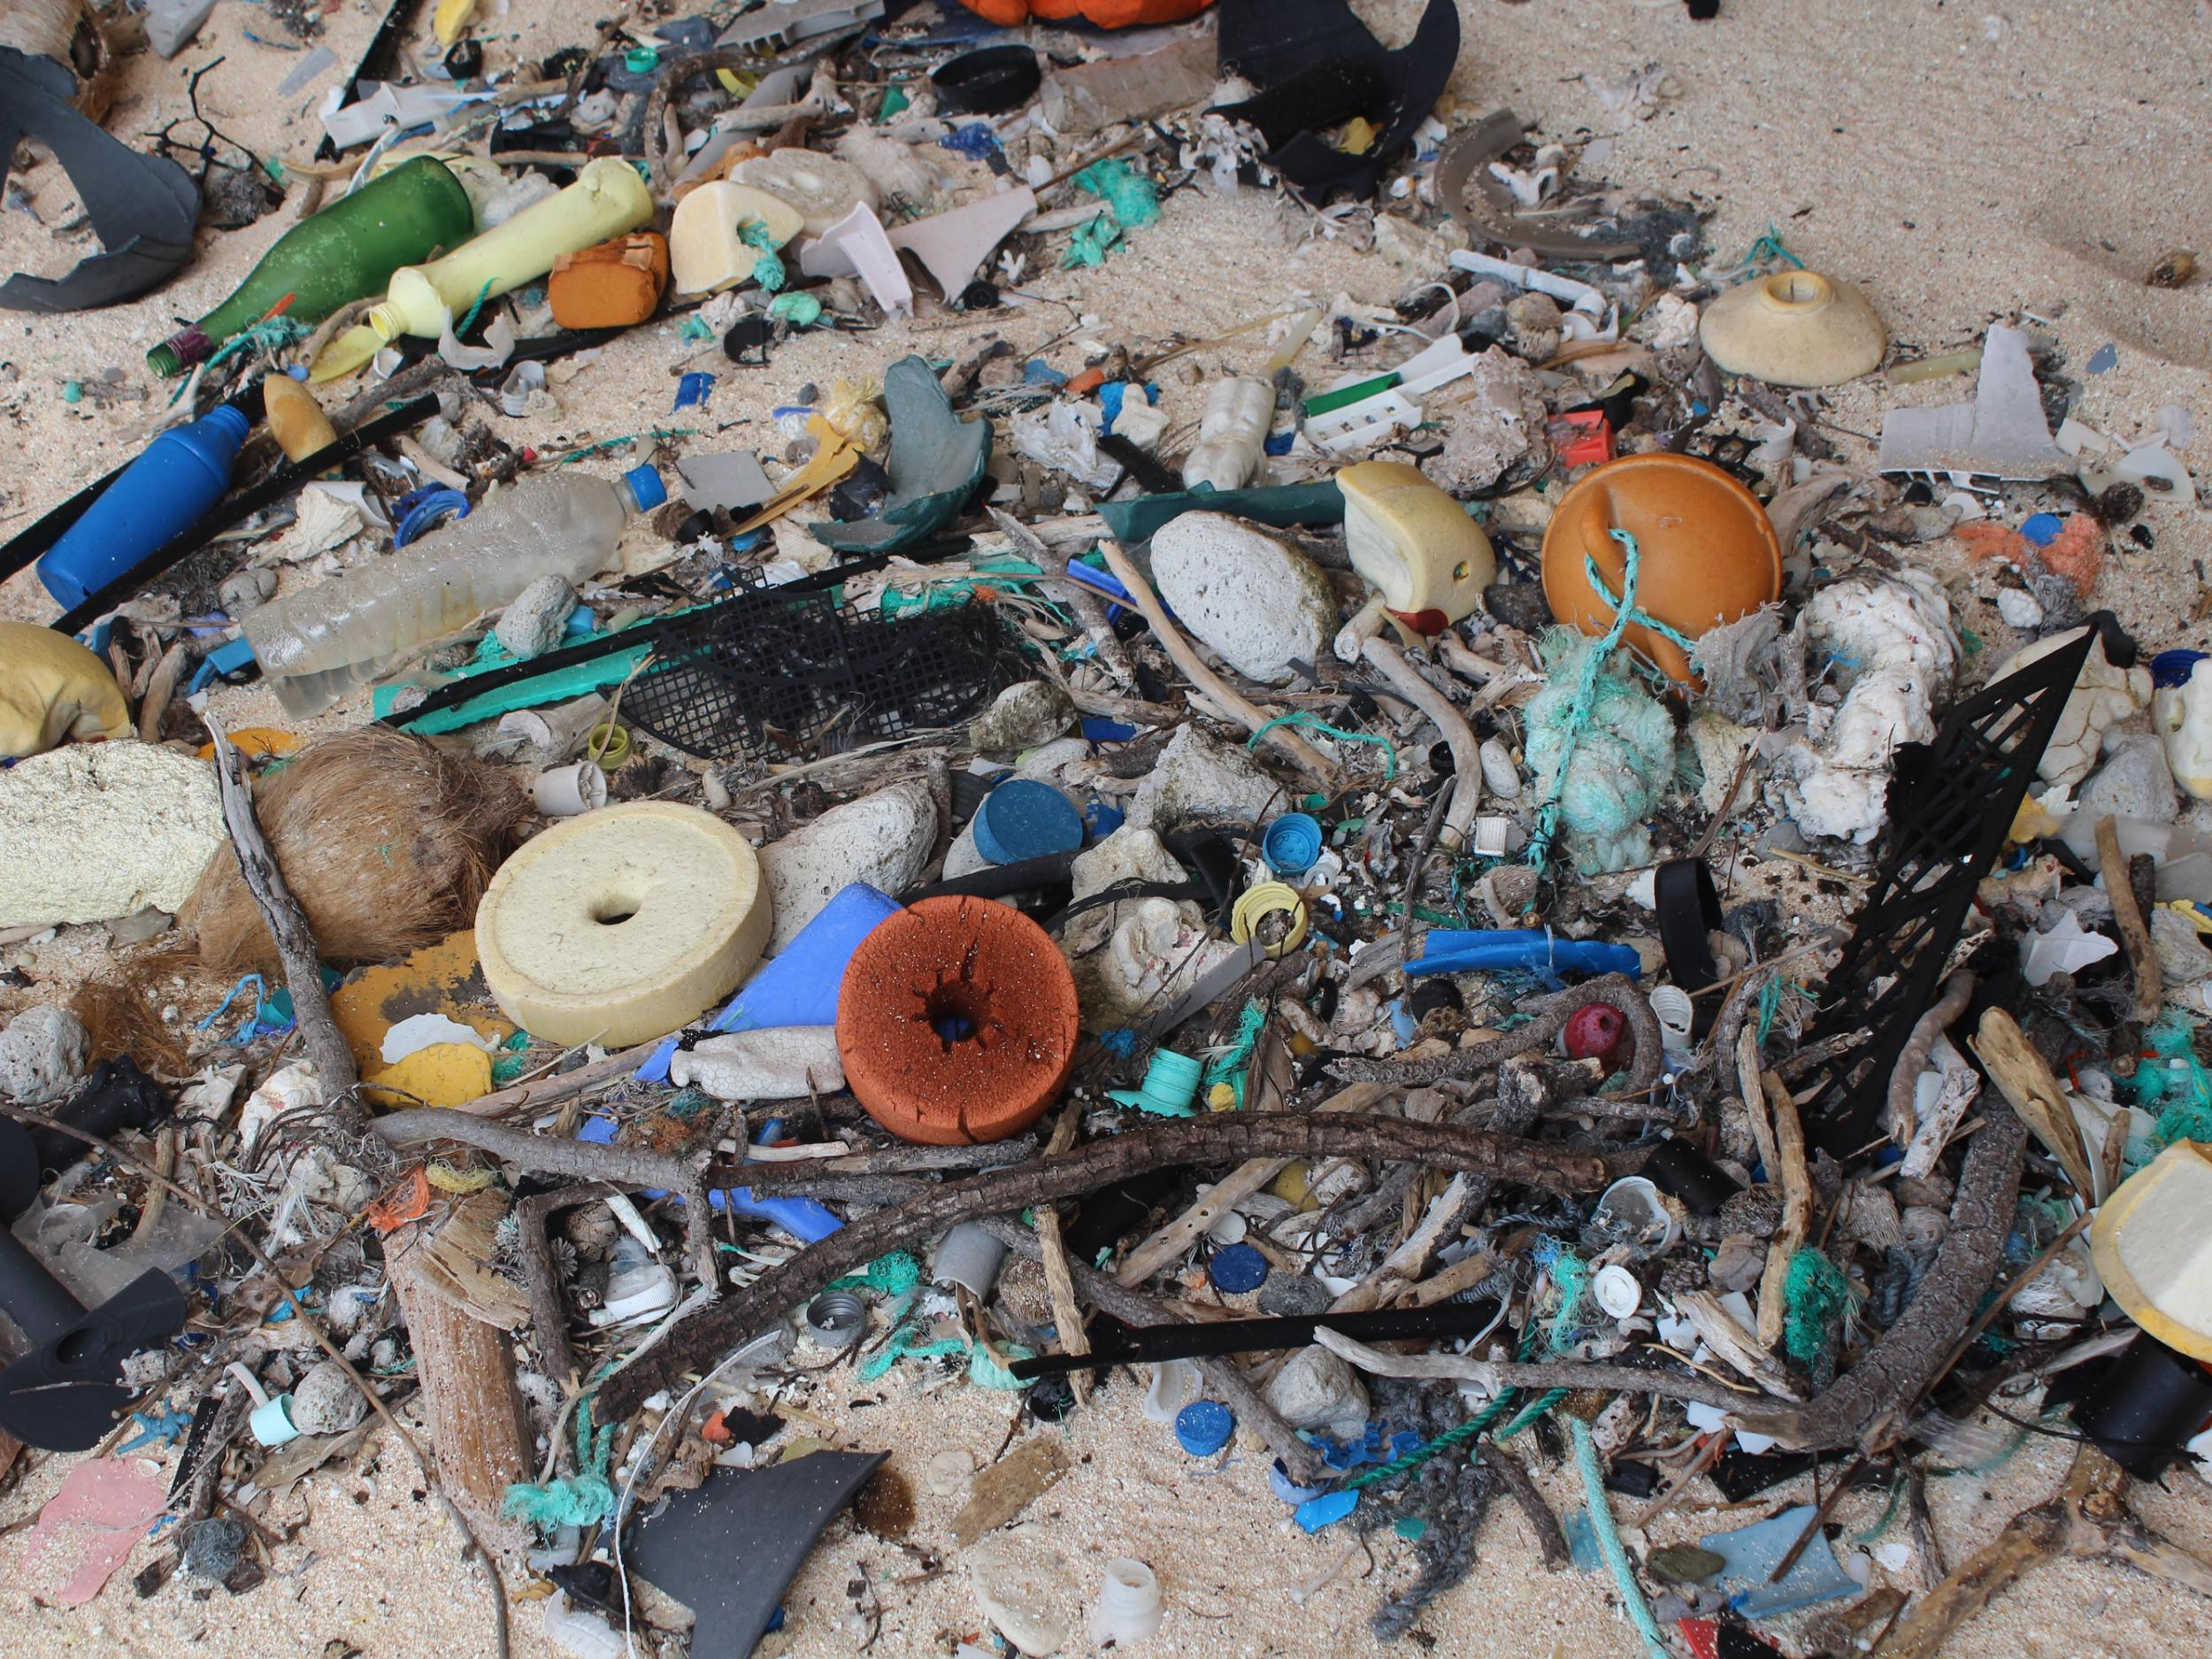 Island in south Pacific 'has world's worst plastic pollution'